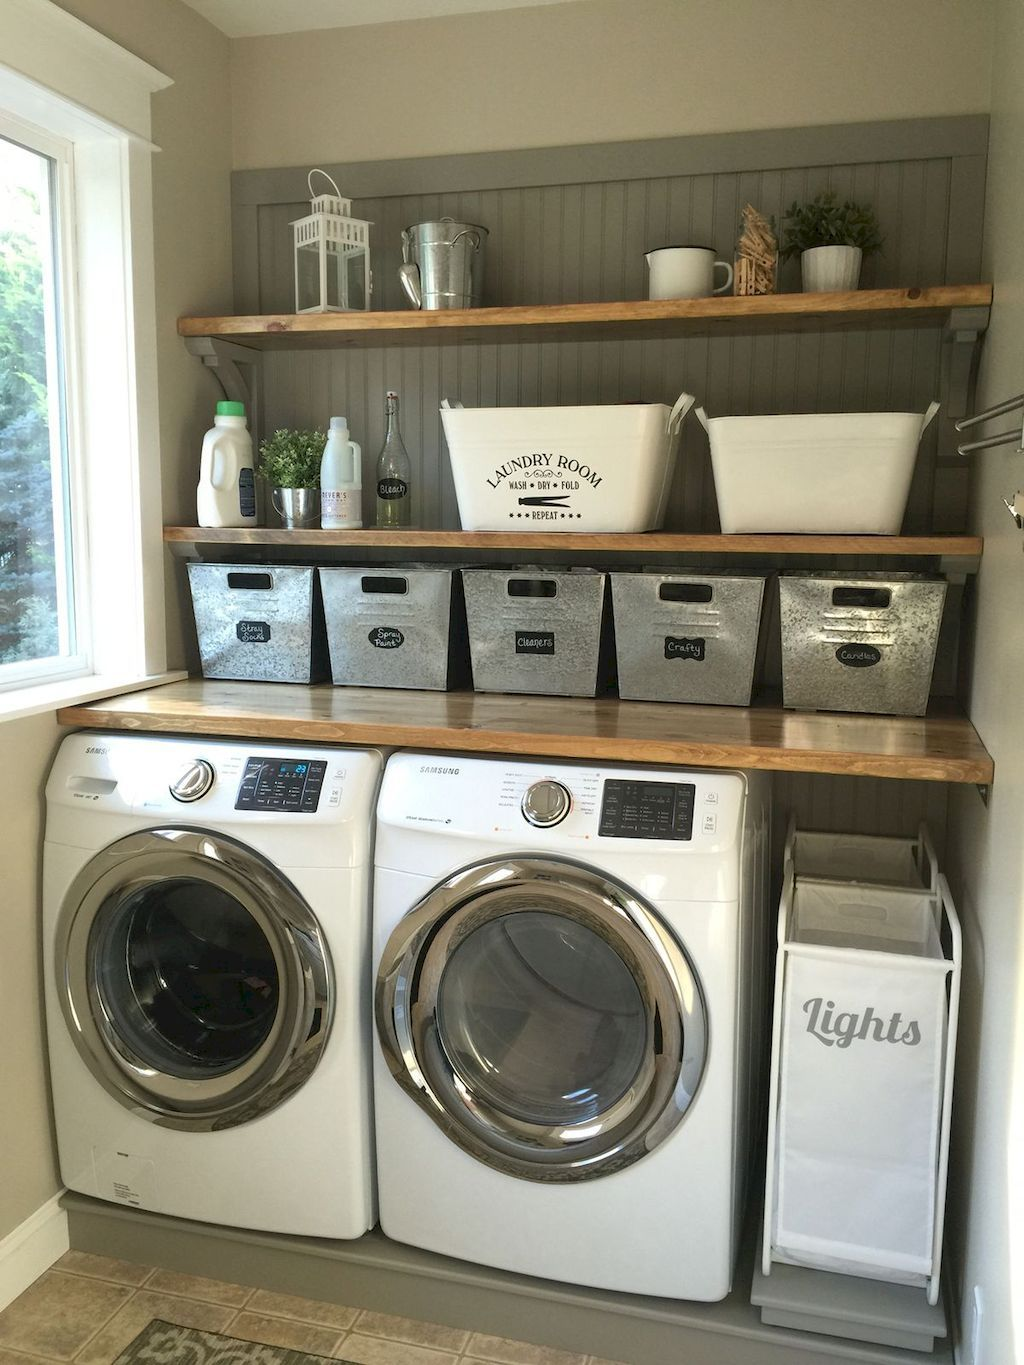 Gorgeous 30 rustic laundry room ideas decoration remodel https roomadness com